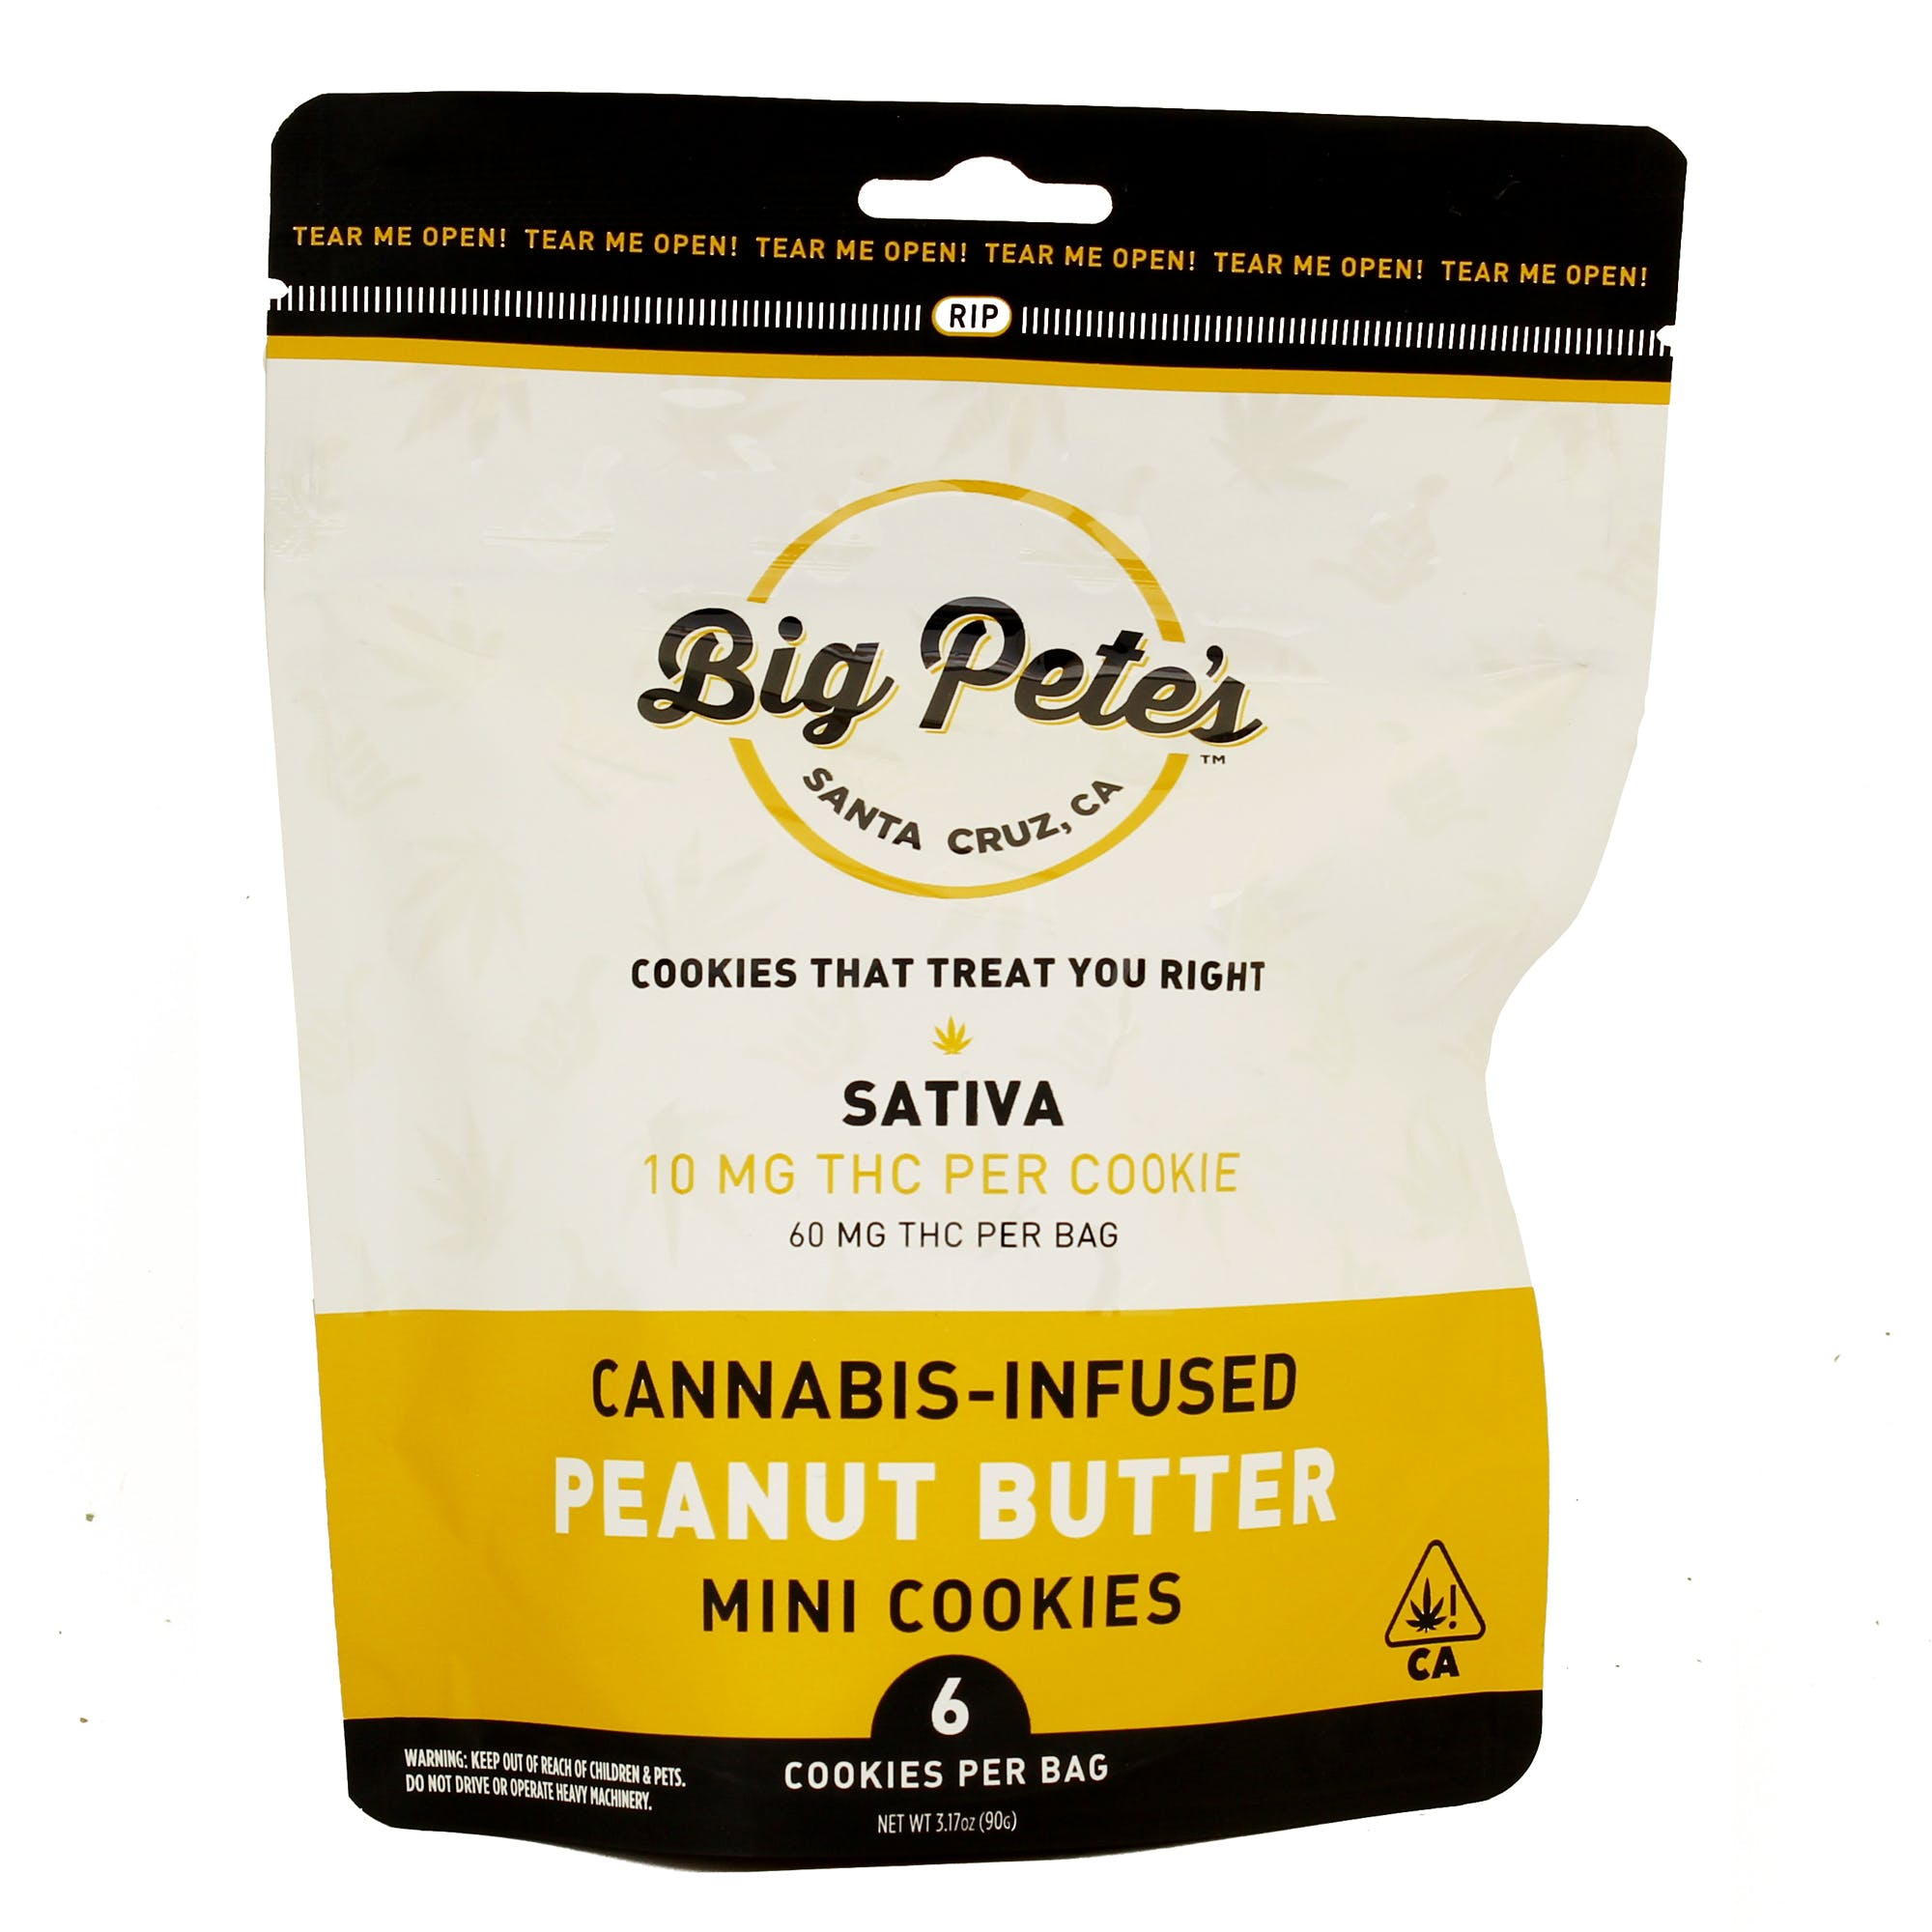 edible-6-pack-peanut-butter-sativa-60mg